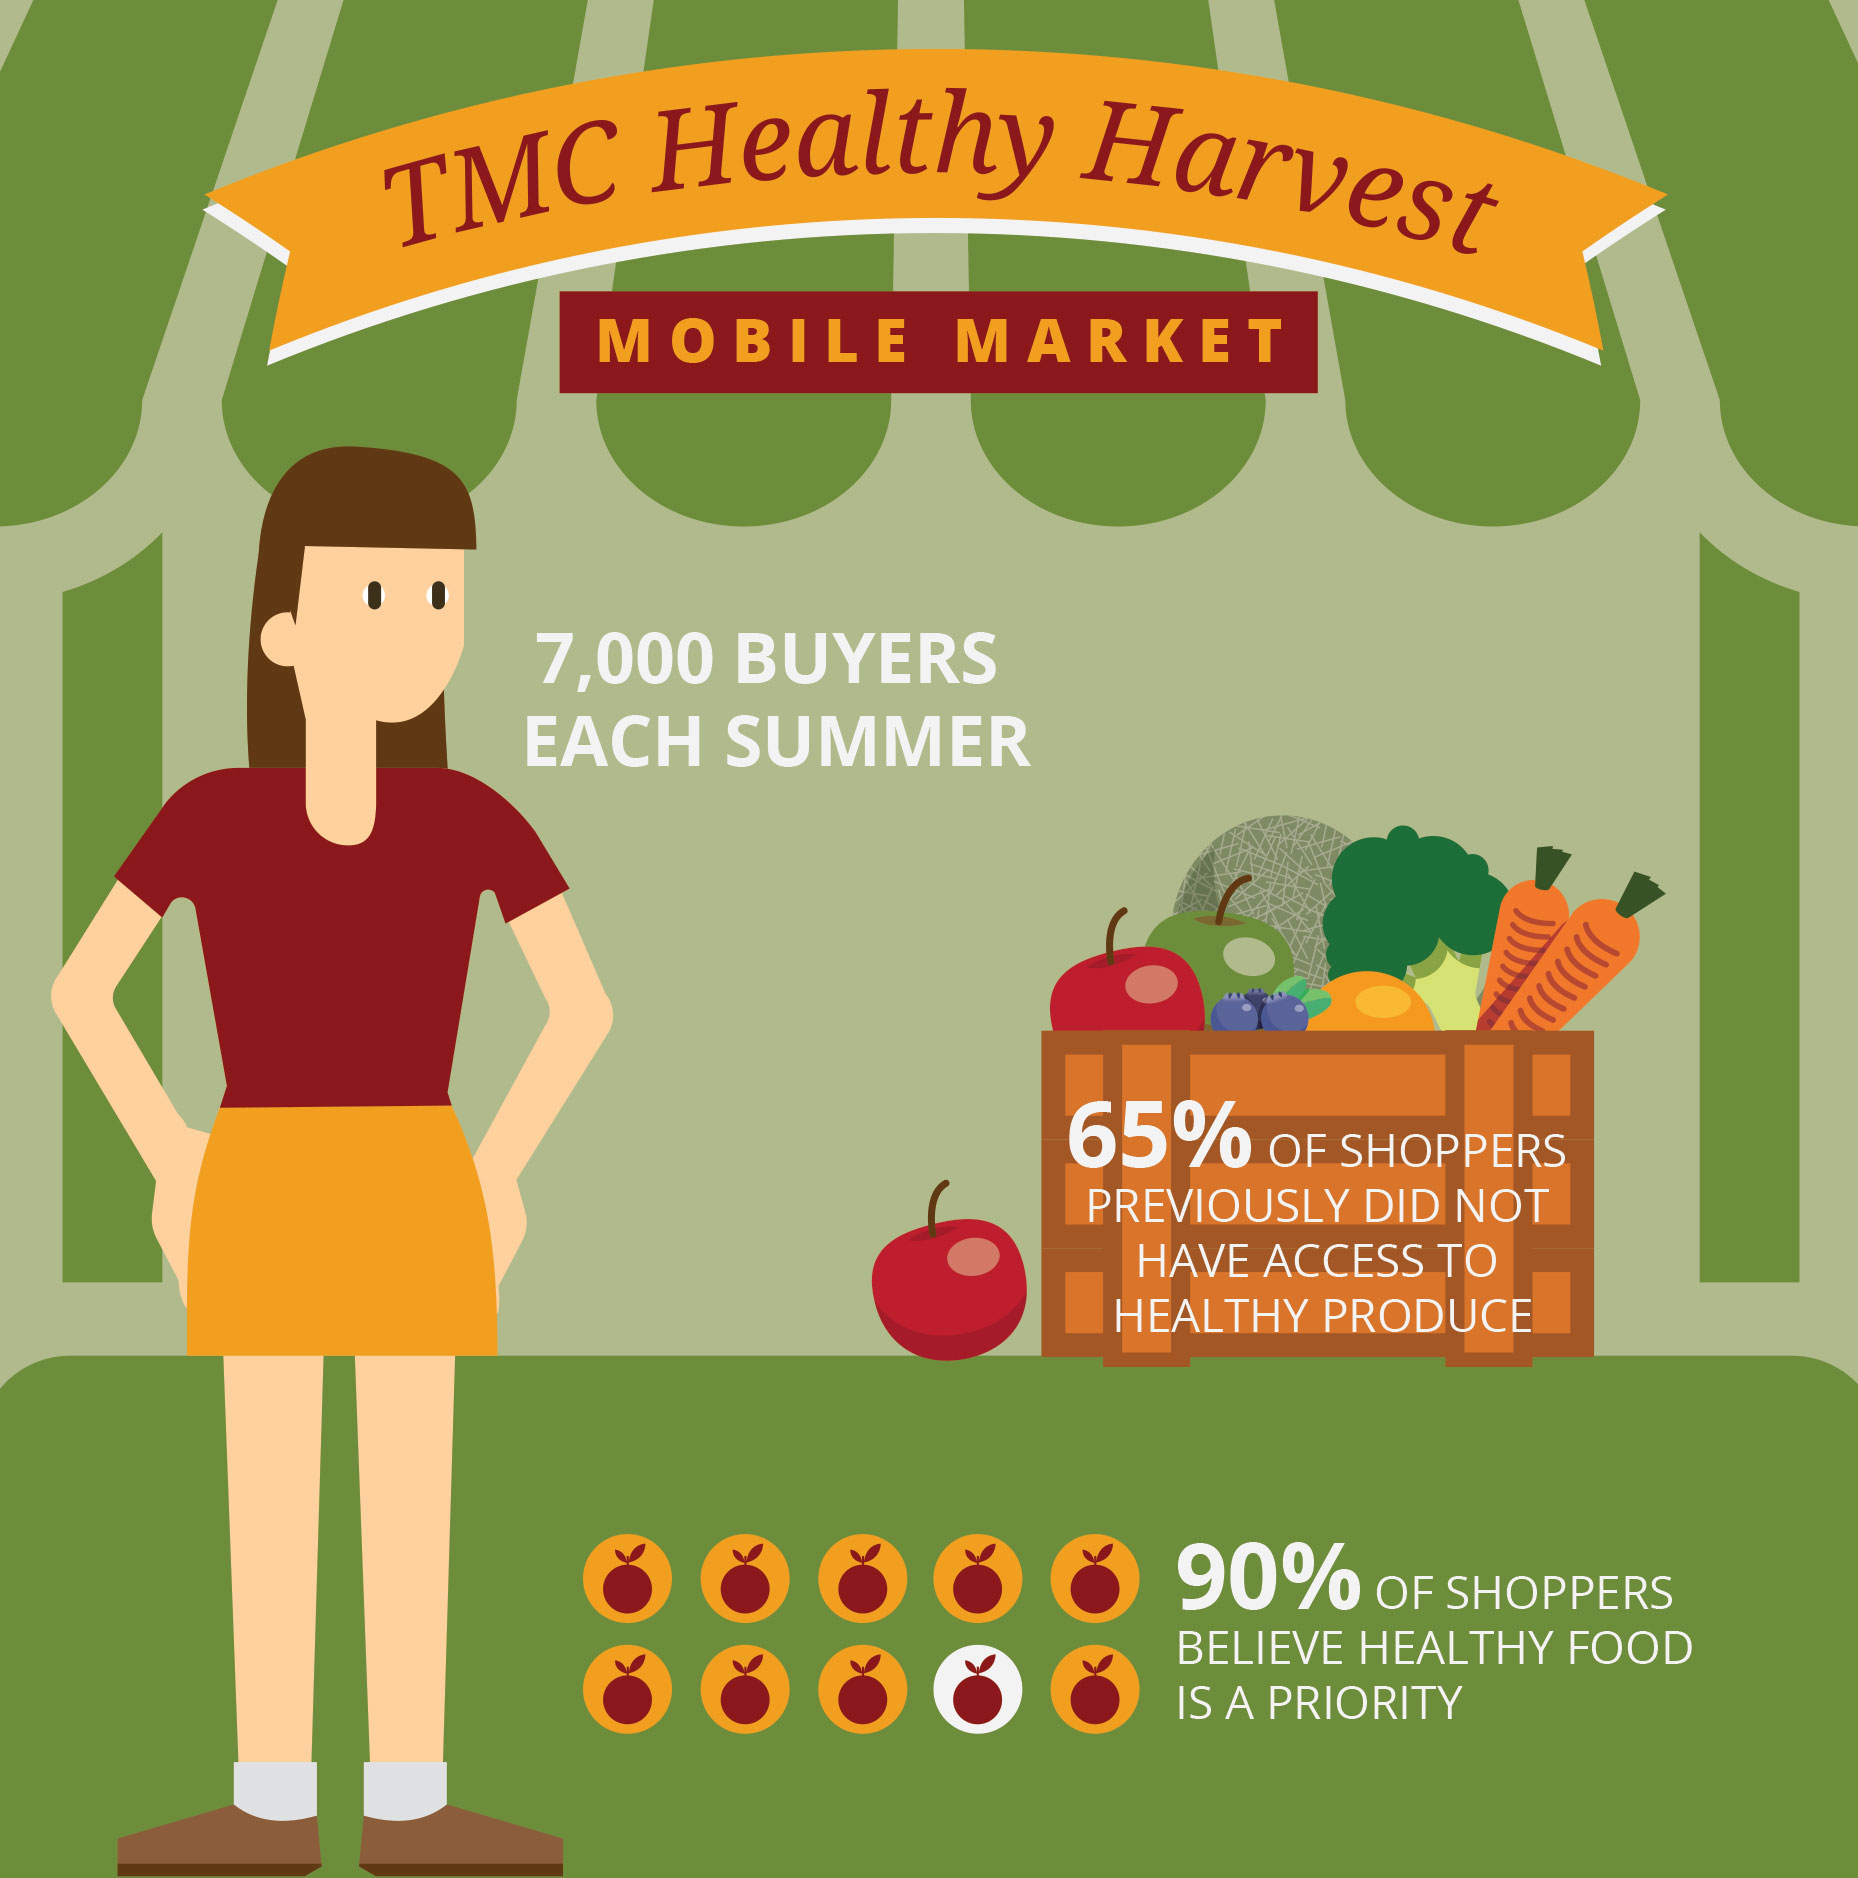 TMC Health Harvest